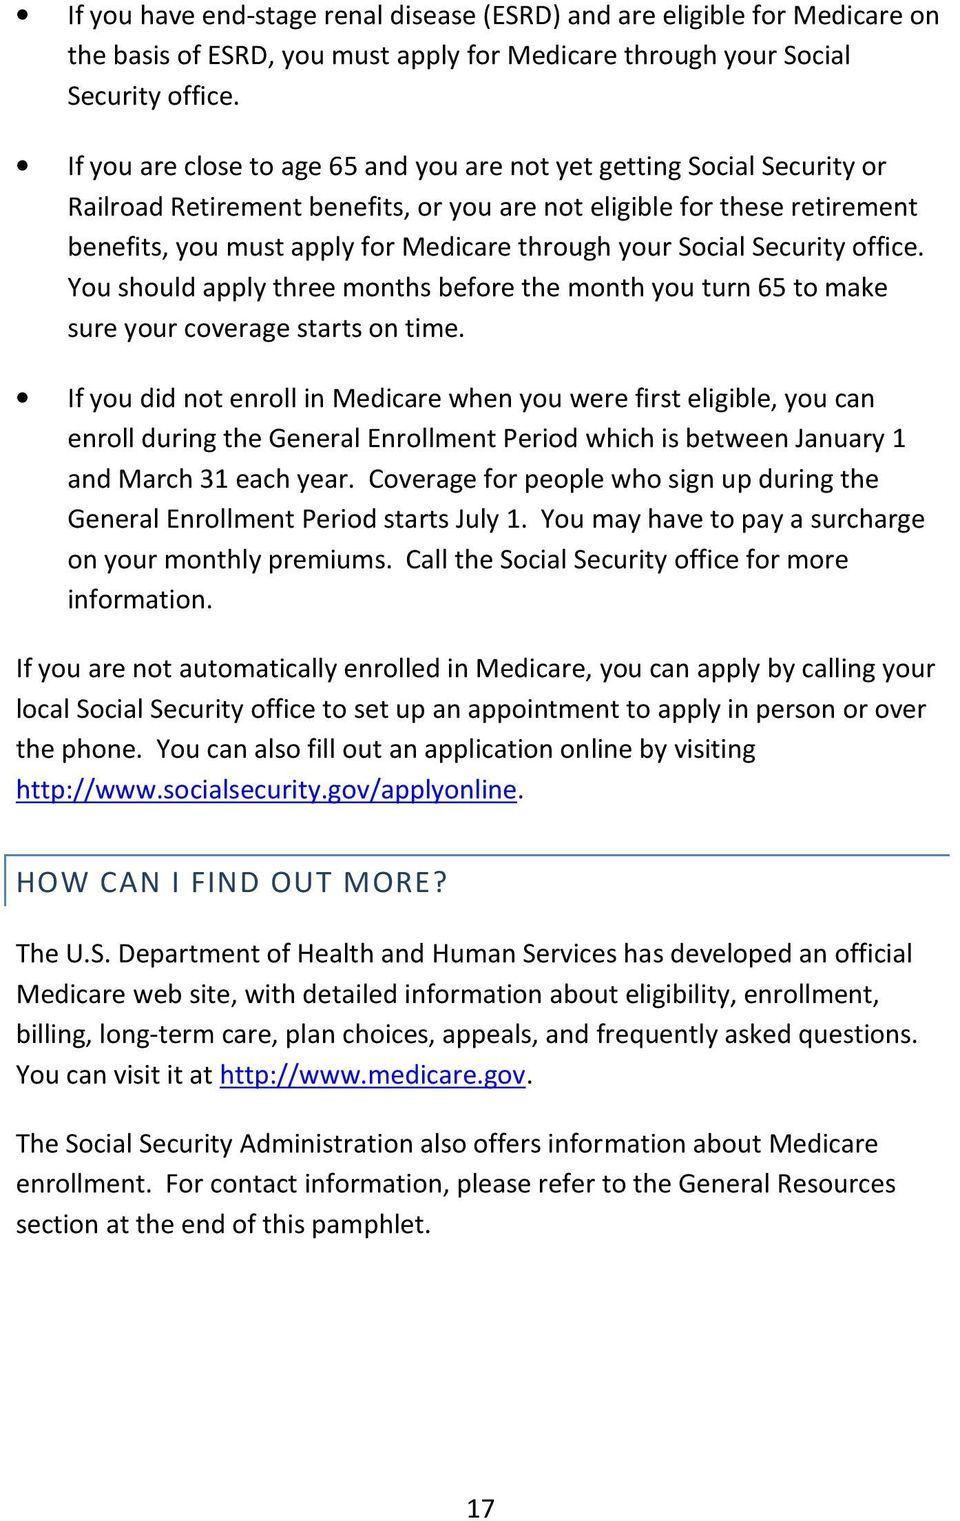 Social Security office. You should apply three months before the month you turn 65 to make sure your coverage starts on time.